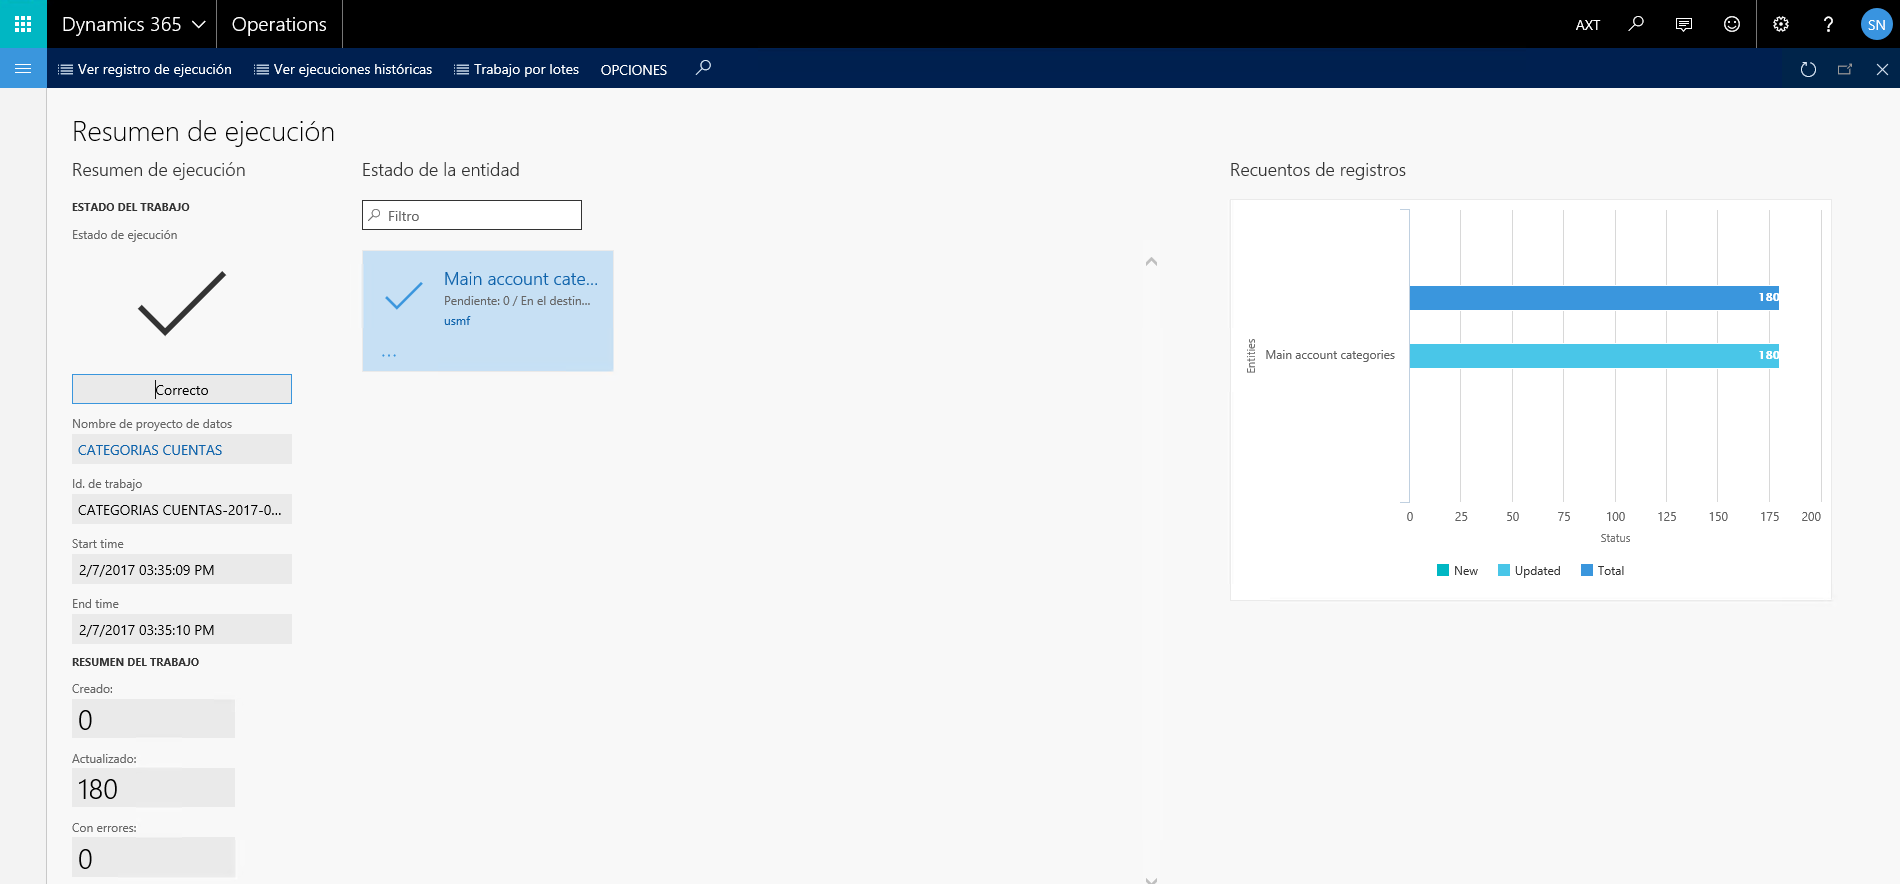 Data Management en Dynamics 365 for Operations: Importación de datos maestros